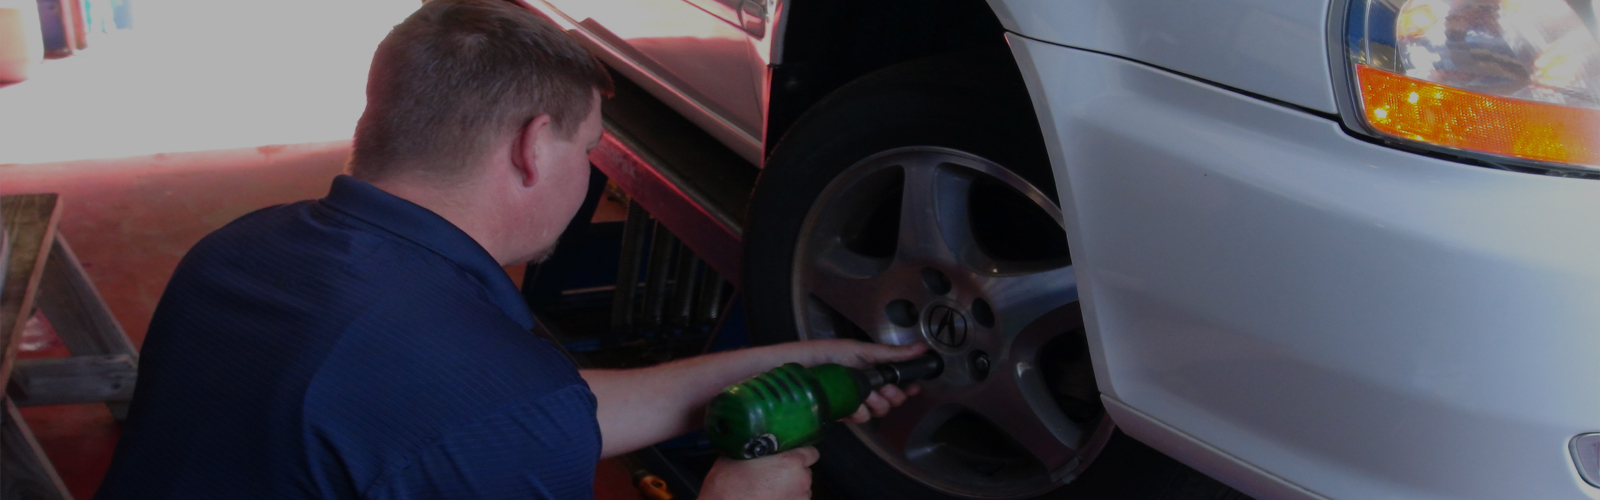 Expert Tire Repair & Replacement